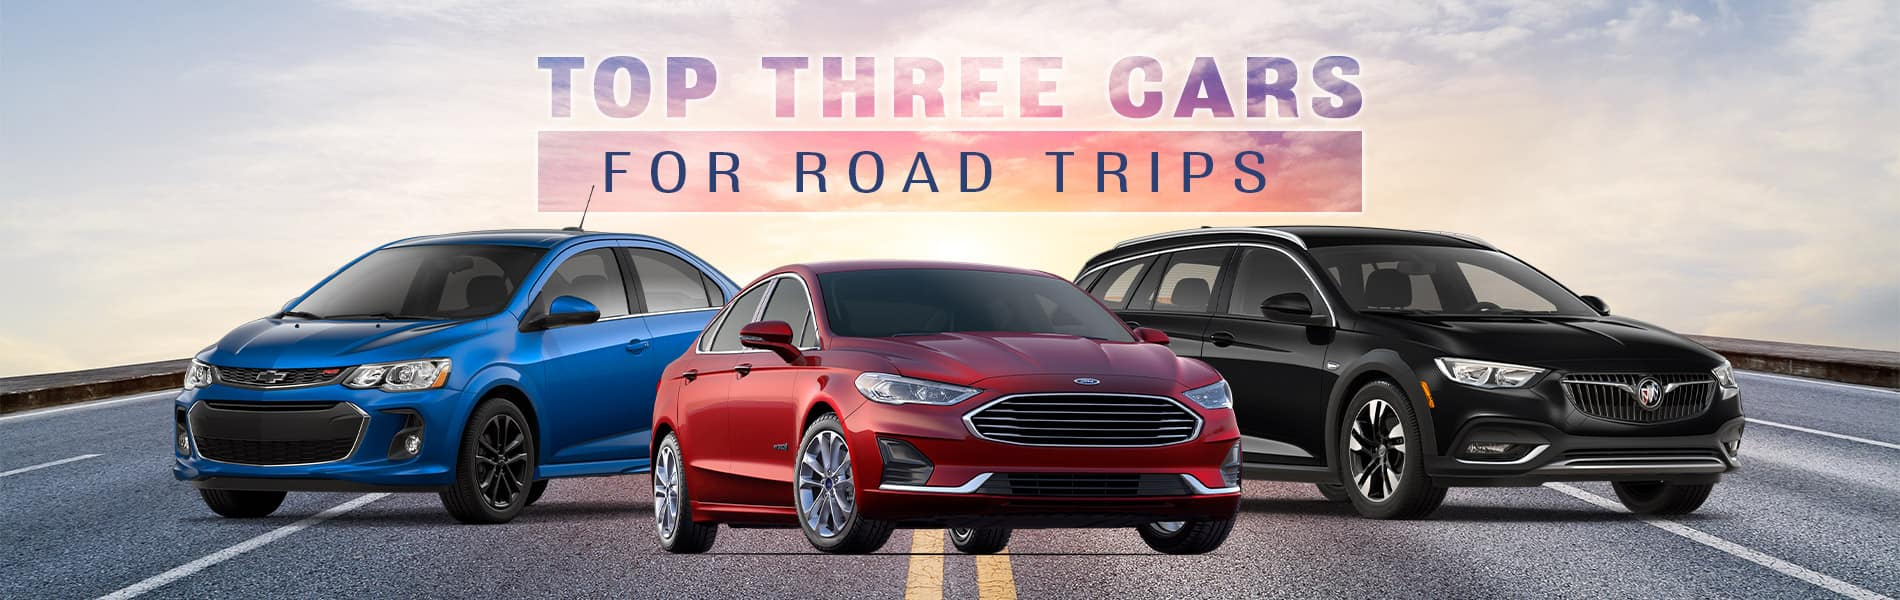 Top Three Cars for Road Trips | Fort Wayne, IN